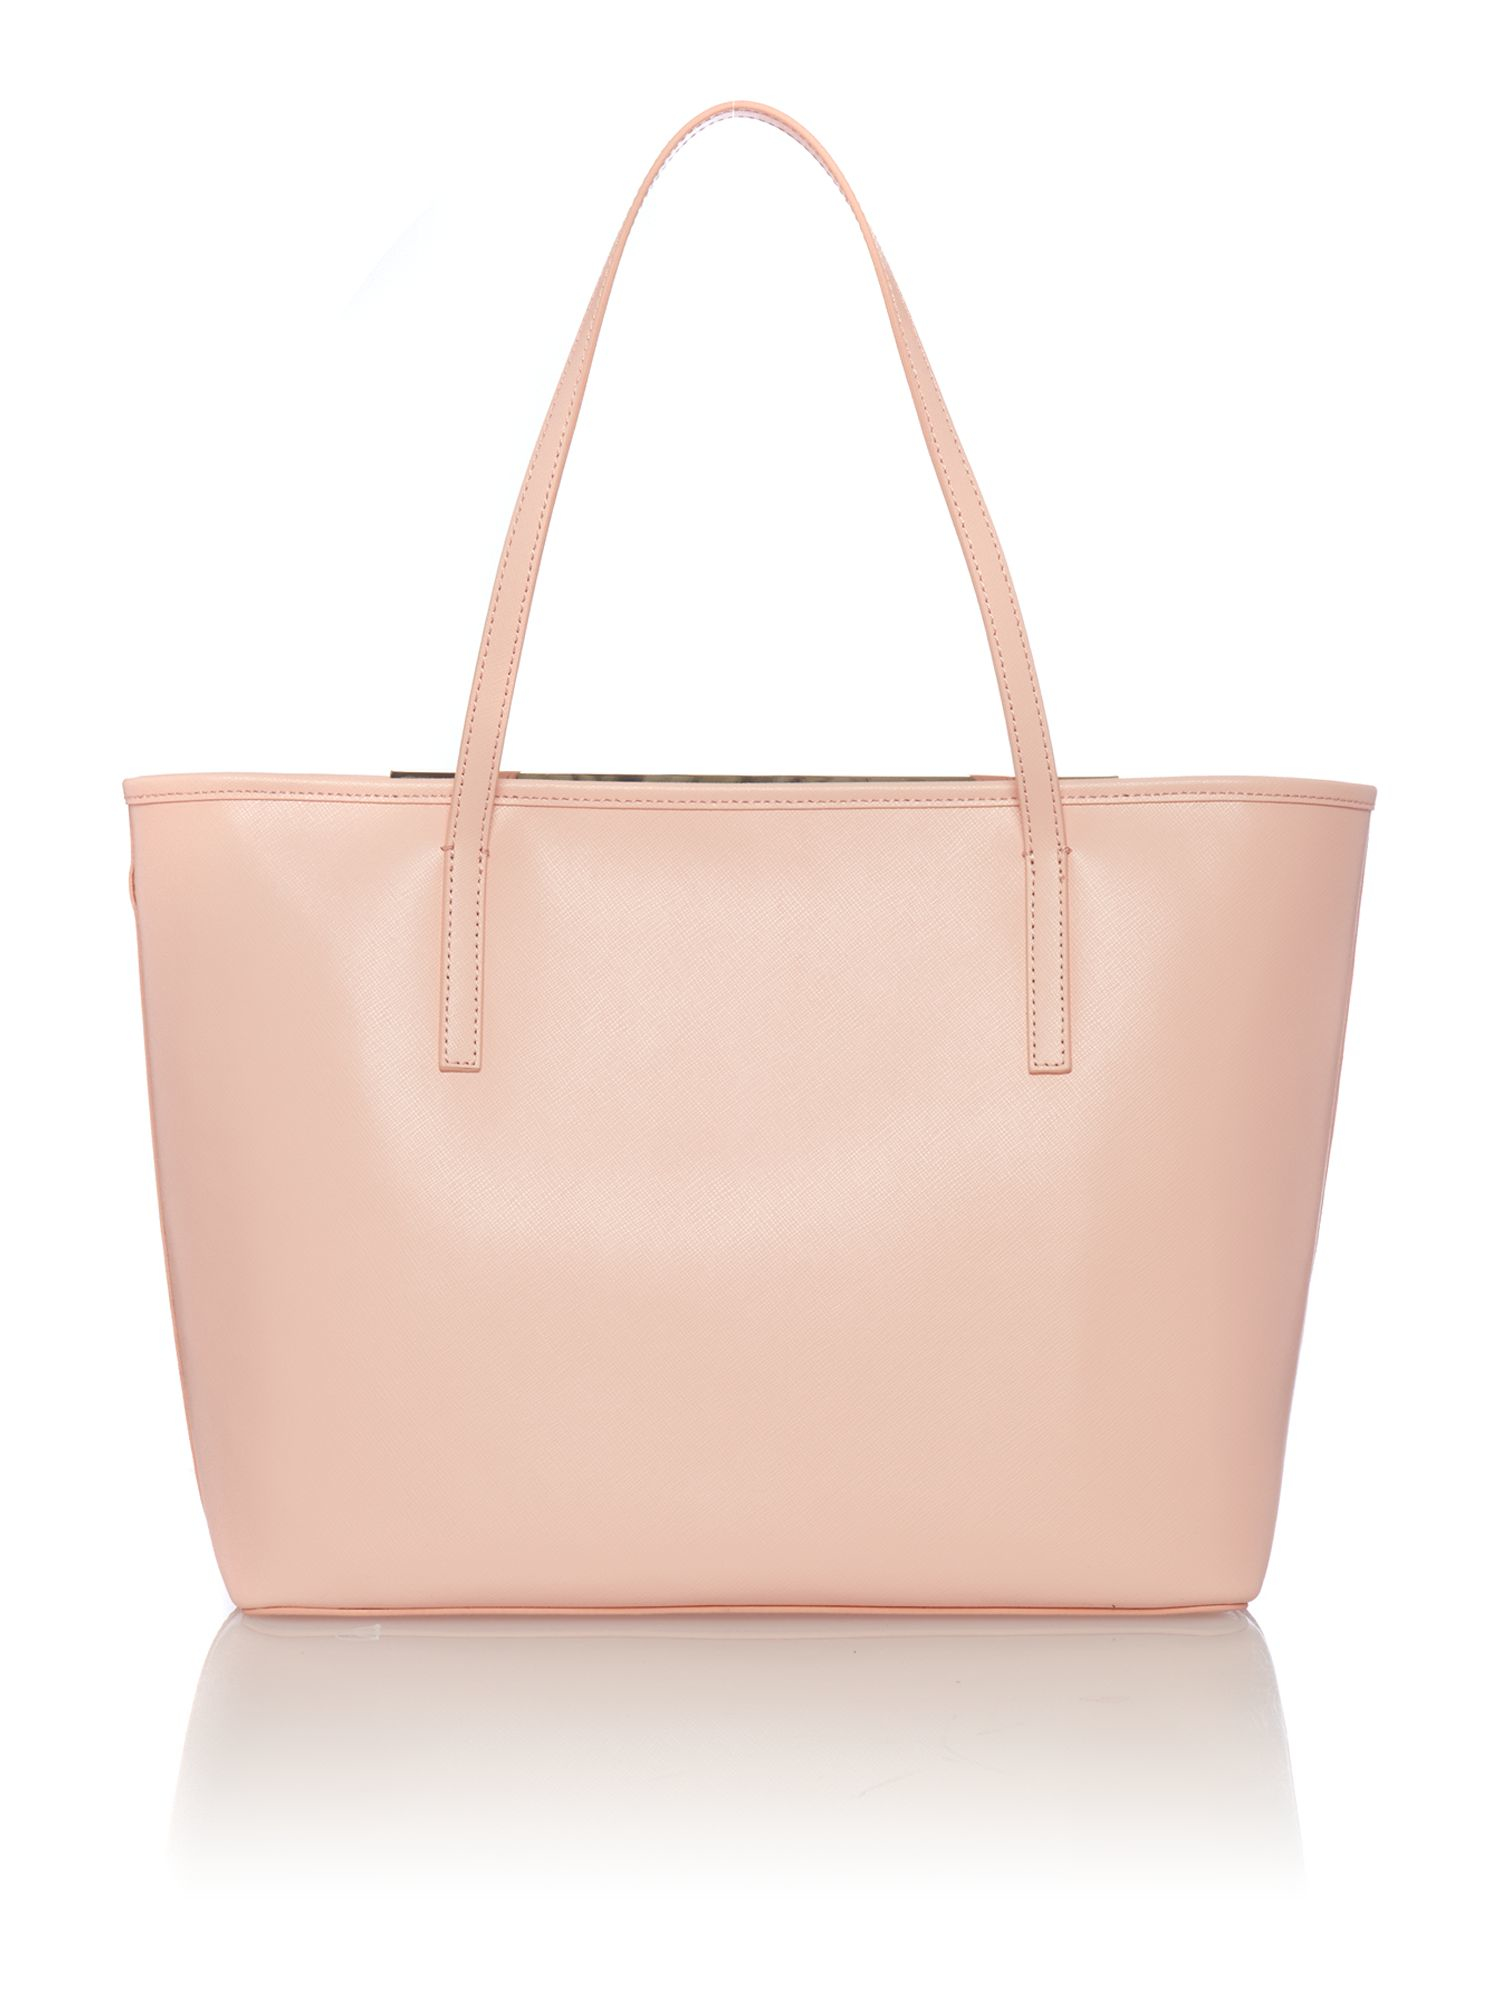 ted baker celiaa light pink saffiano large tote bag in pink lyst. Black Bedroom Furniture Sets. Home Design Ideas